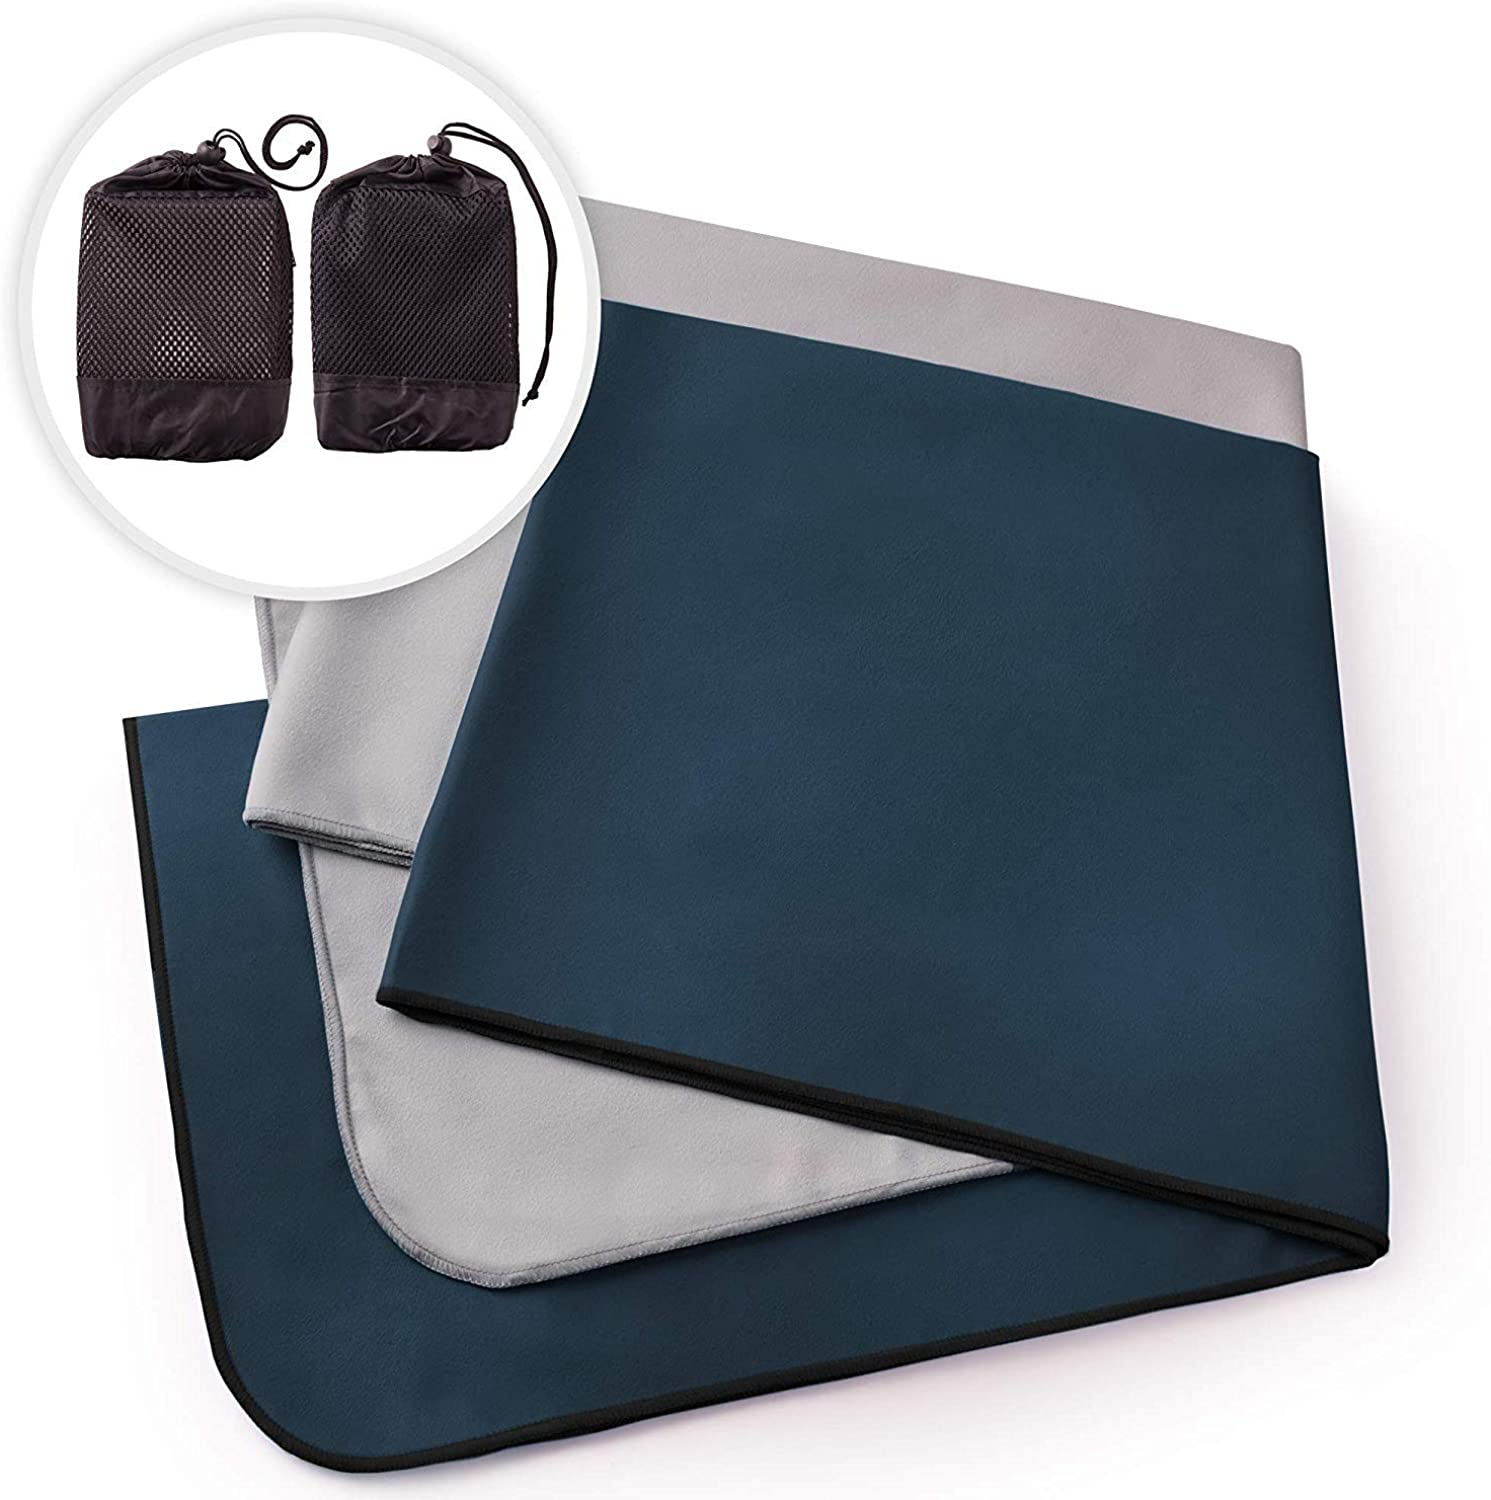 The Friendly Swede Microfiber Towels for Sports, Gym, Yoga, Travel, Swim, Hiking and Camping, Ultralight and Quick Drying